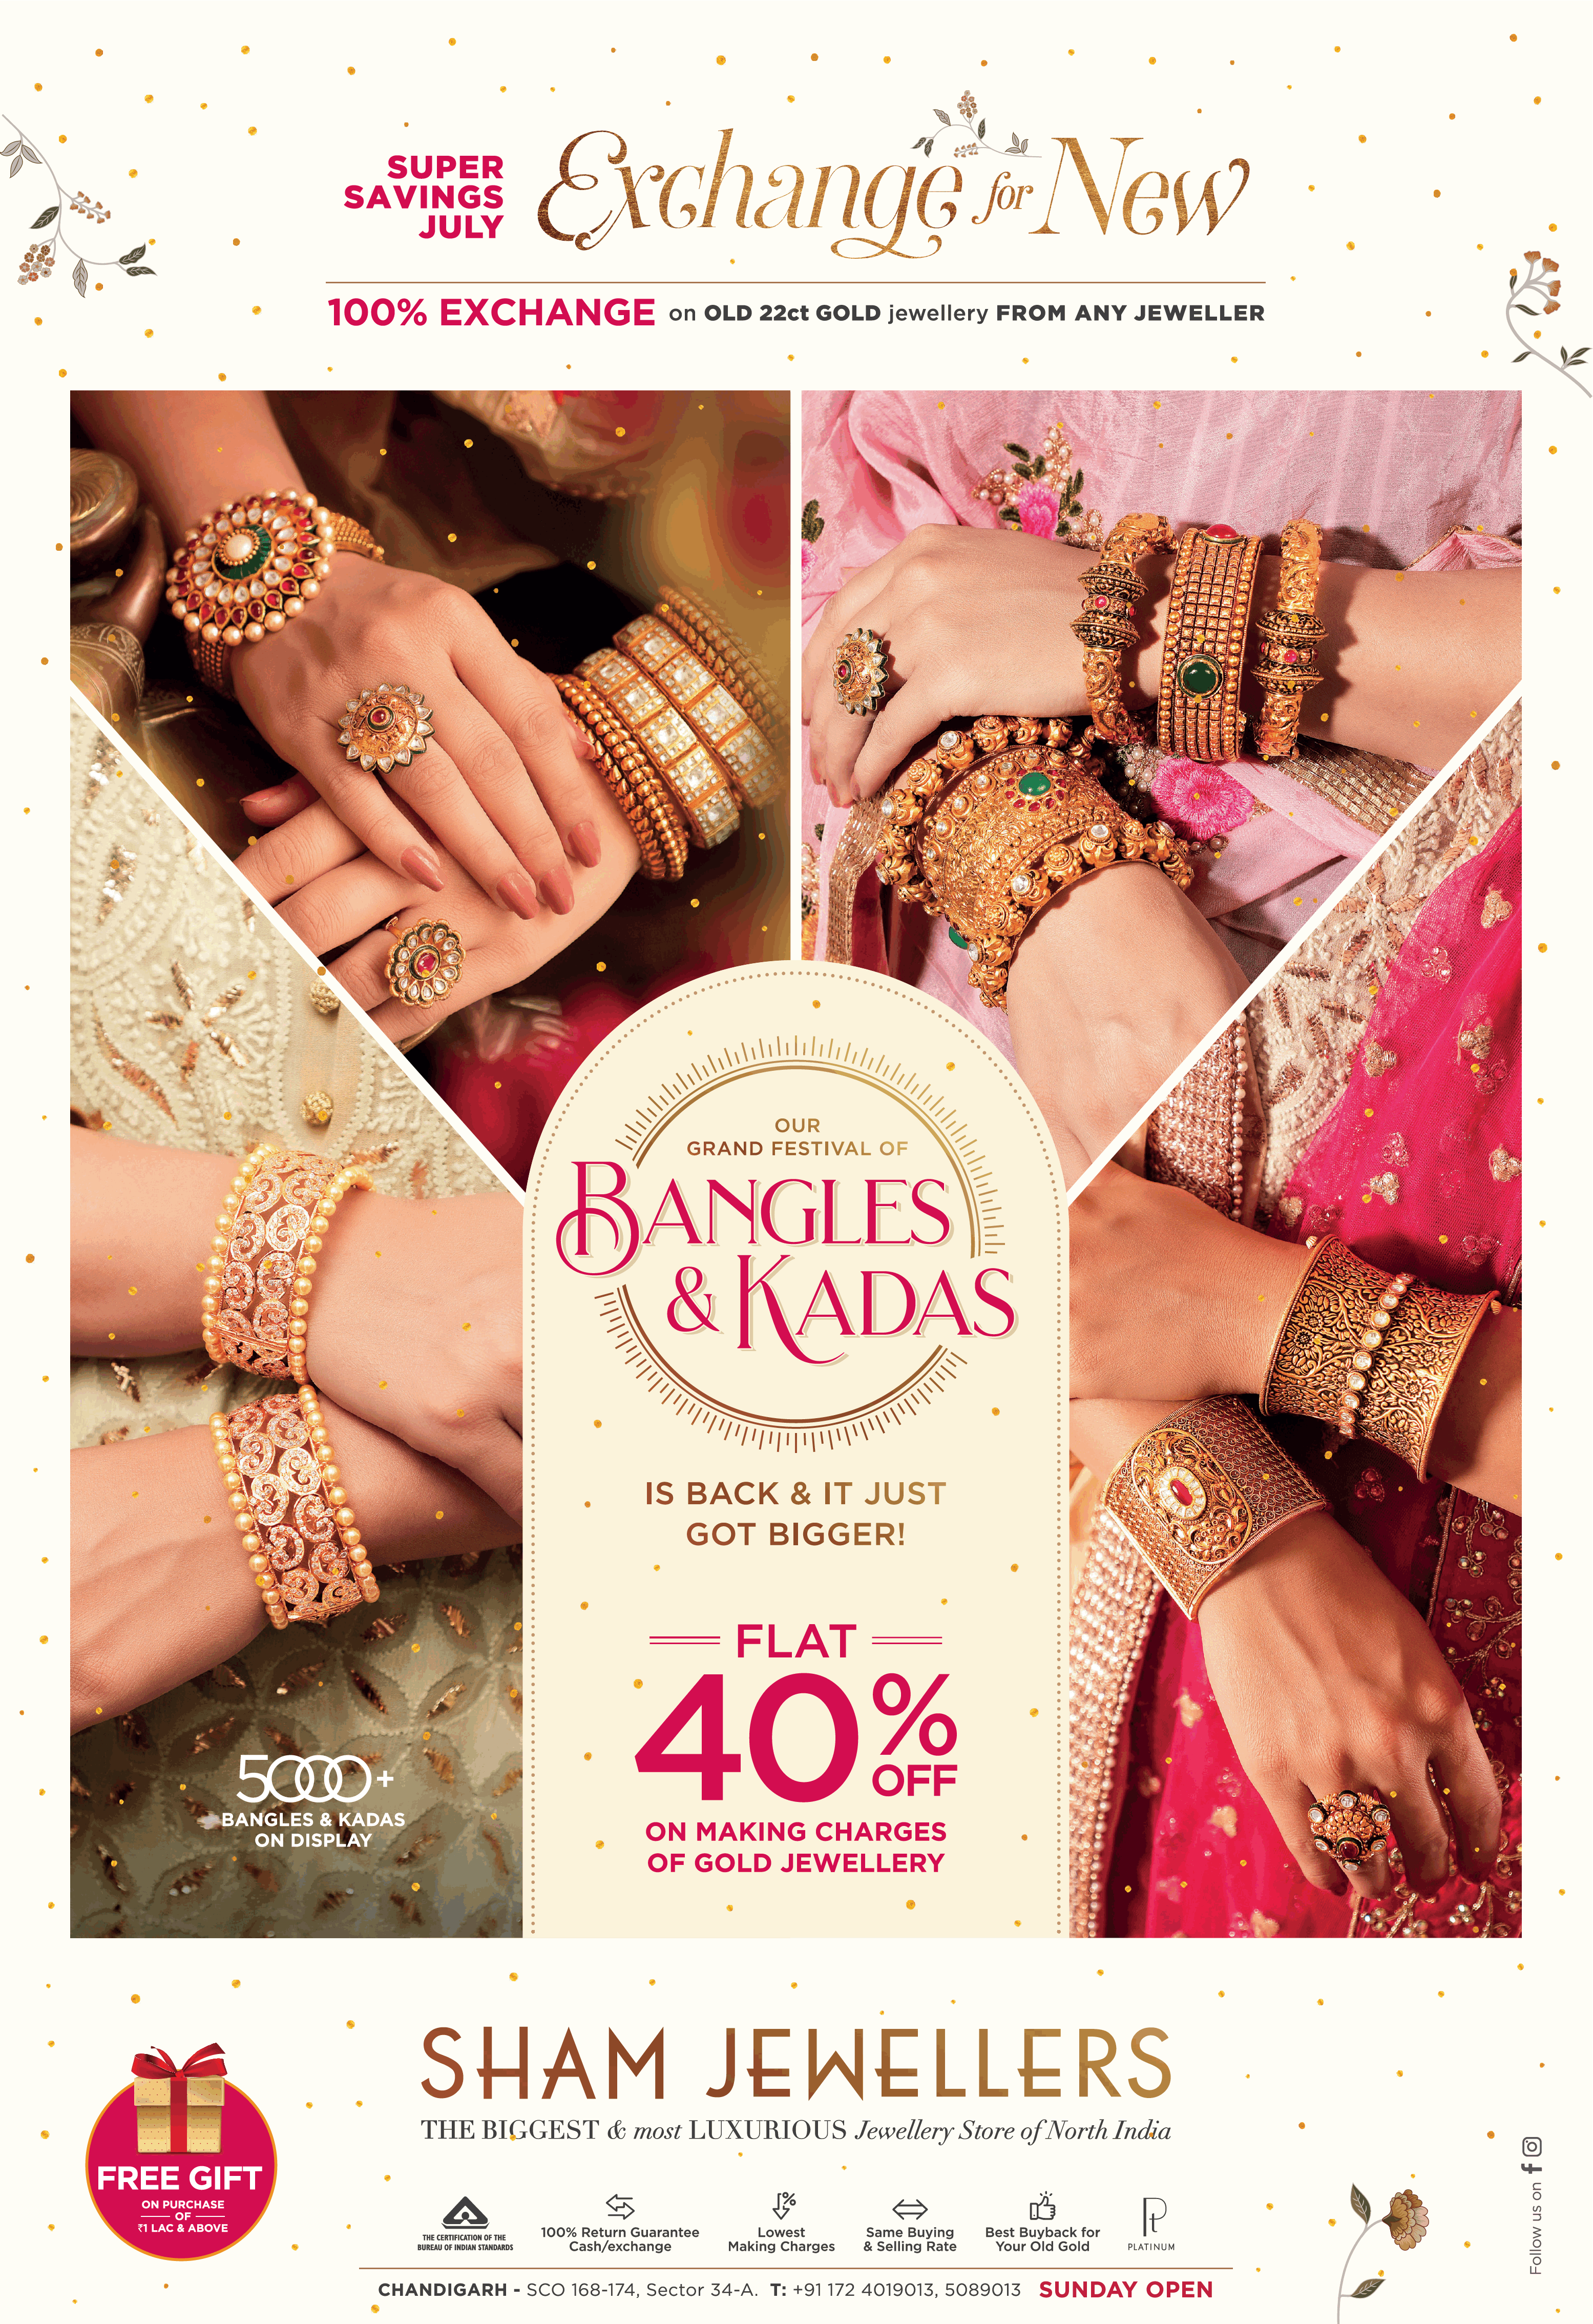 sham-jewellers-bangles-&-kadas-flat-40%-off-on-making-charges-of-gold-jewellery-ad-toi-chandigarh-11-7-2021